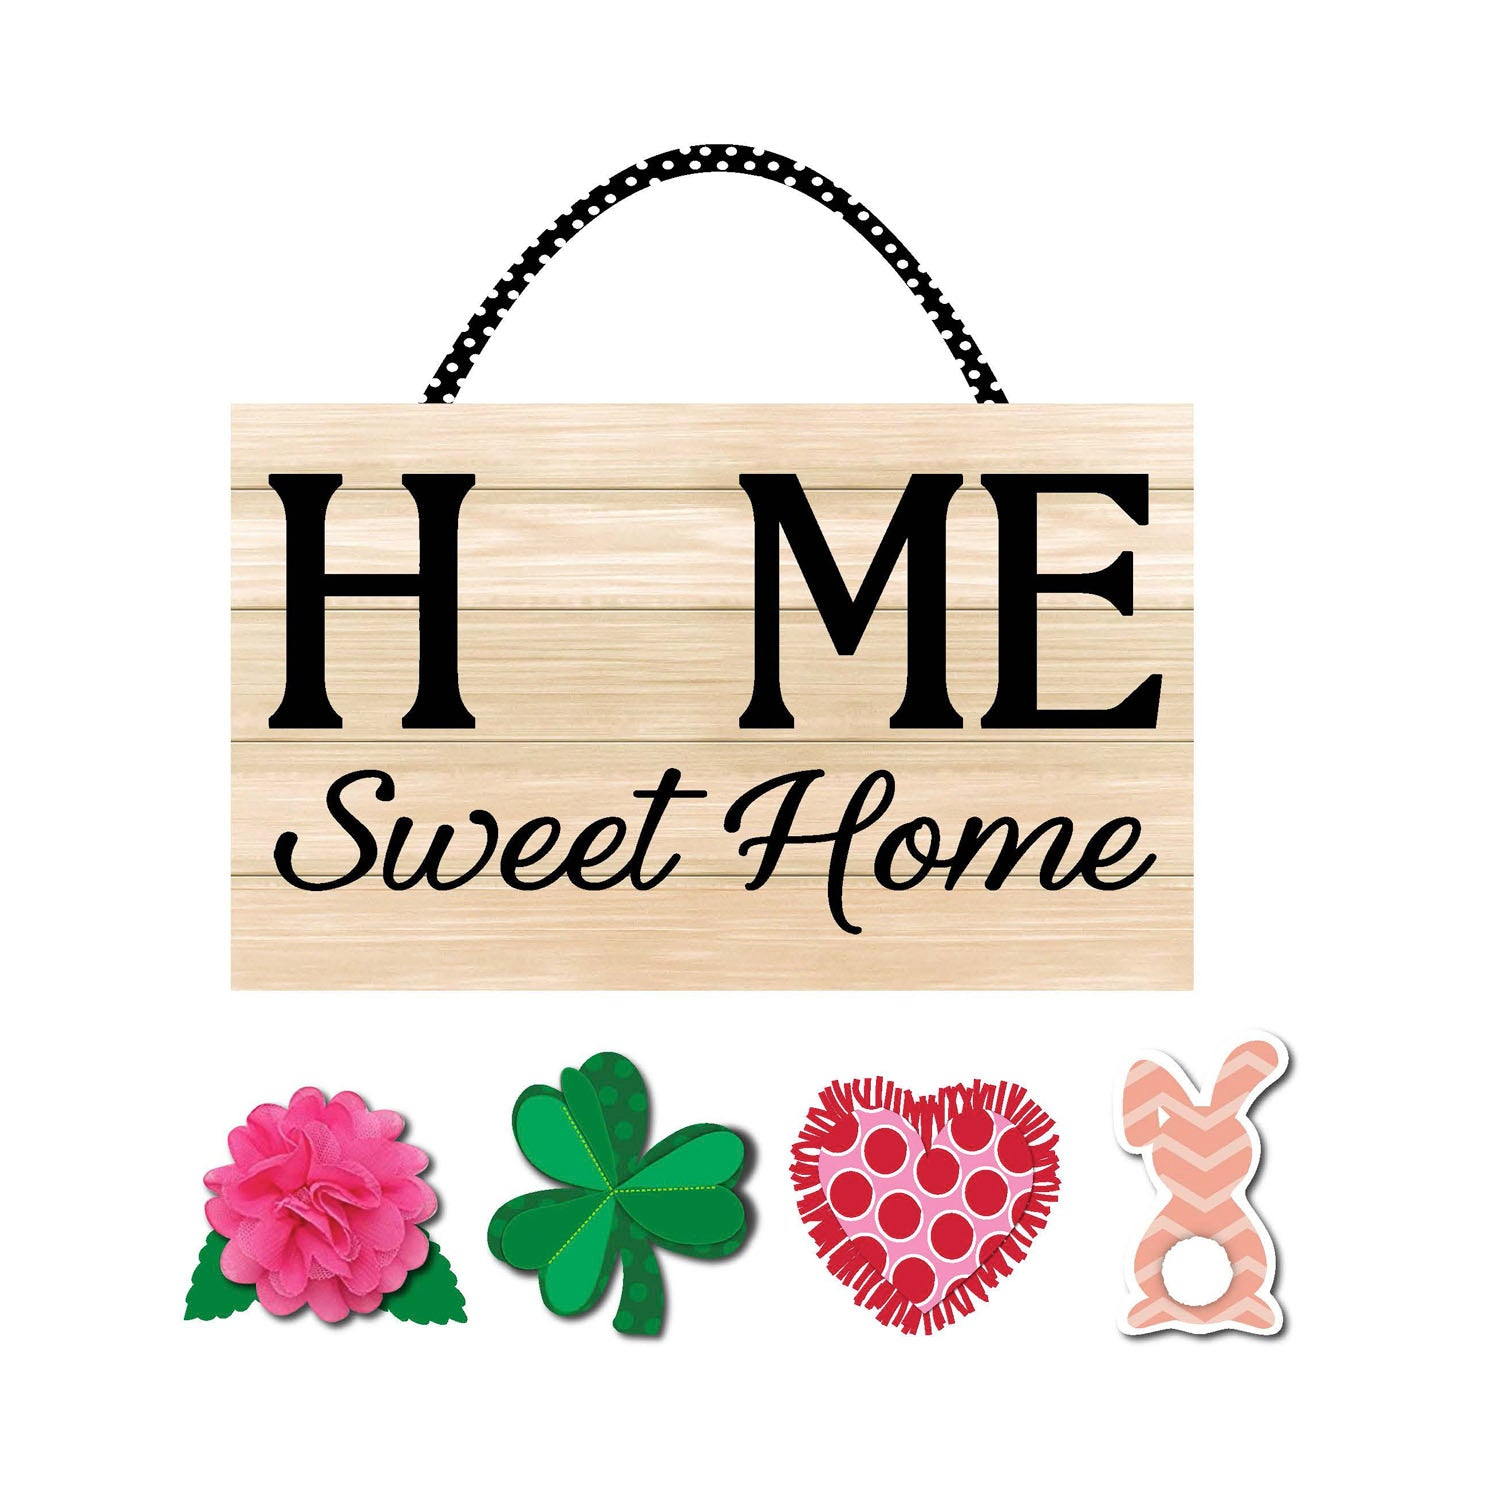 Spring Home Sweet Home Burlap Door Decor